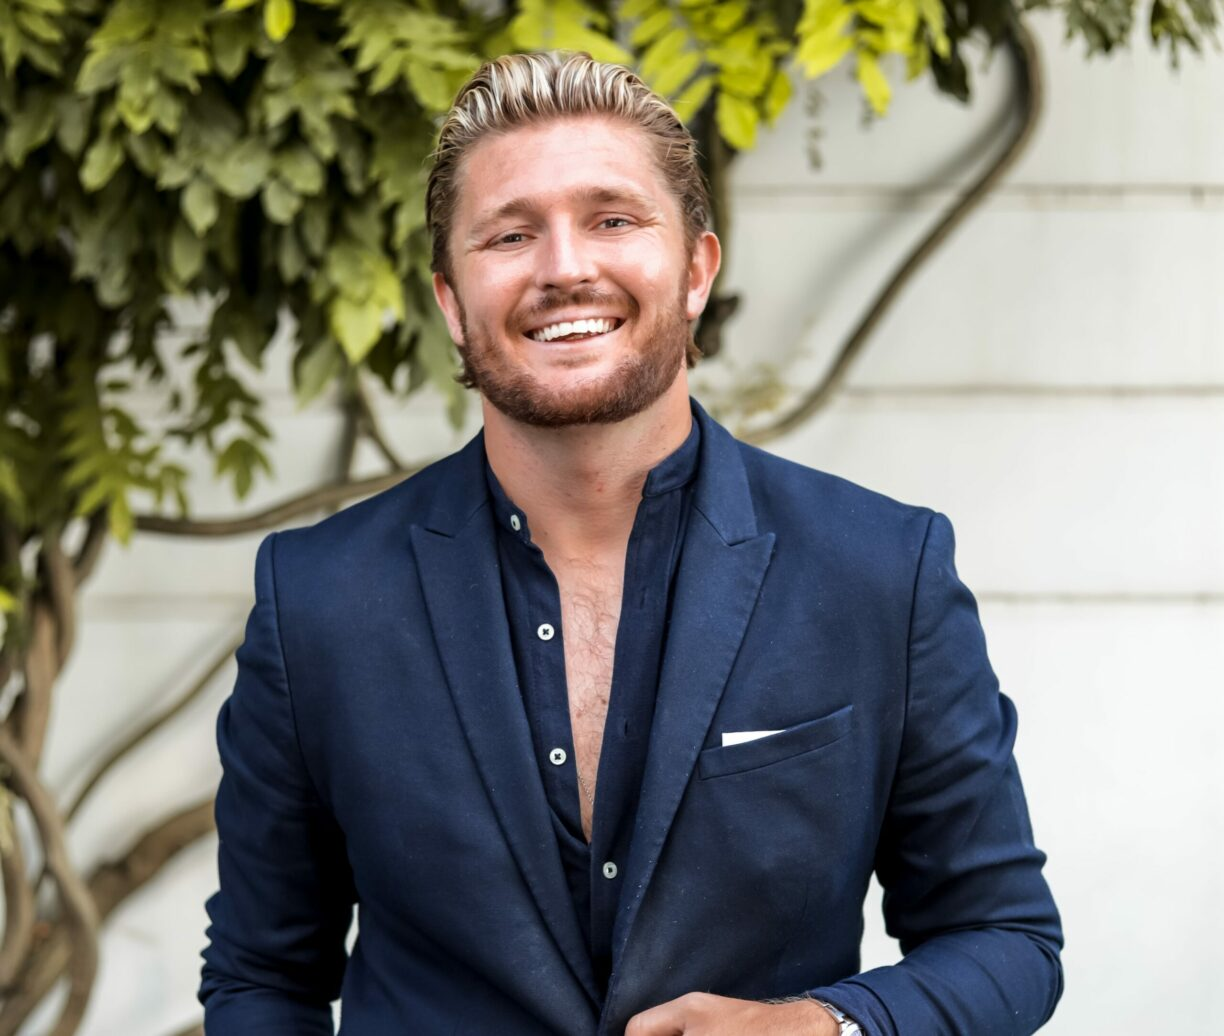 YOUTUBE star and food entrepreneur Mikey Pearce